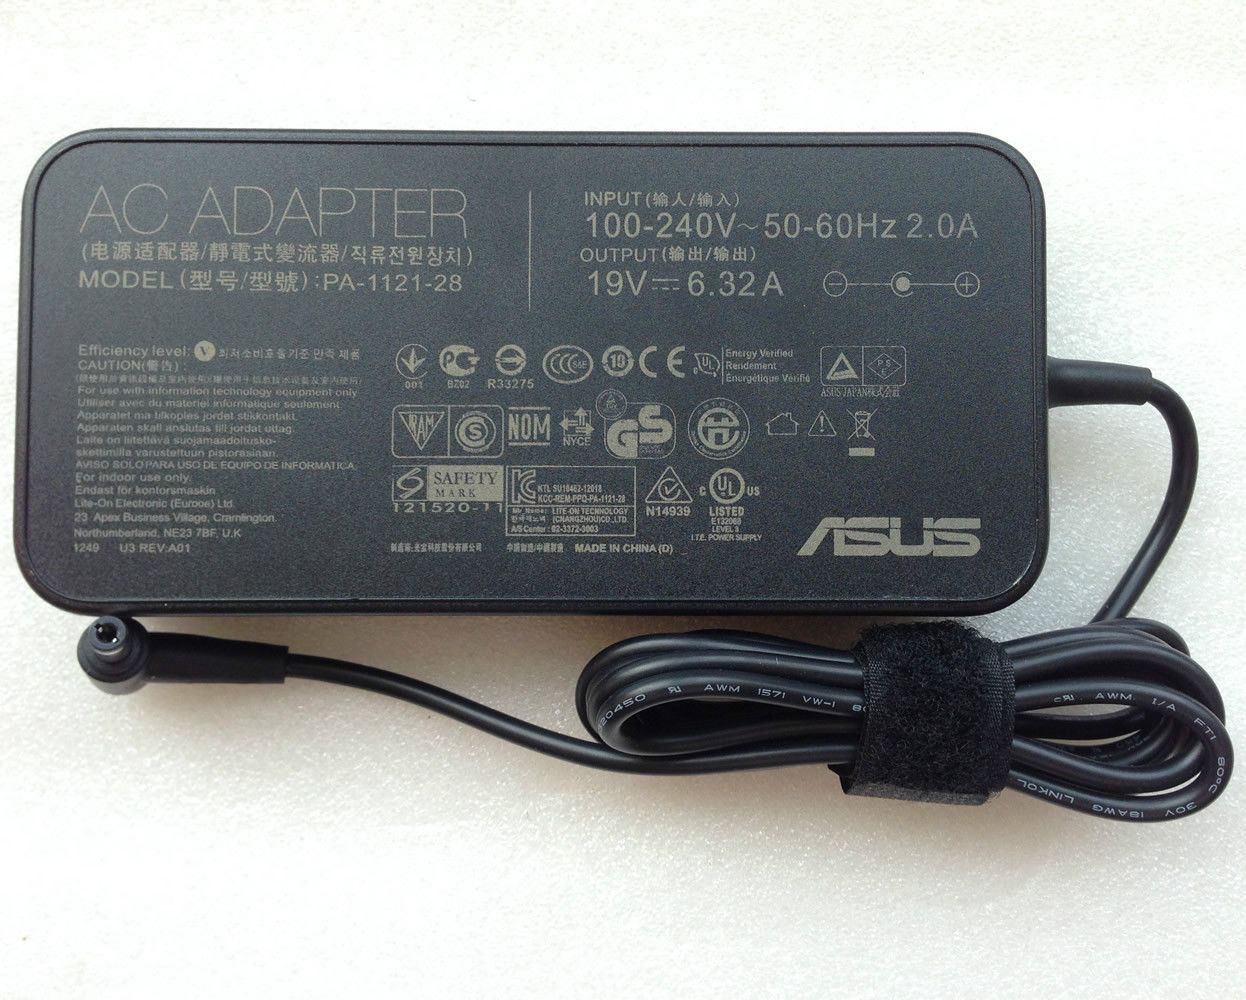 19V 6.32A AC Adapter ASUS G51J A7T N550 Q550 N750 PA-1121-28